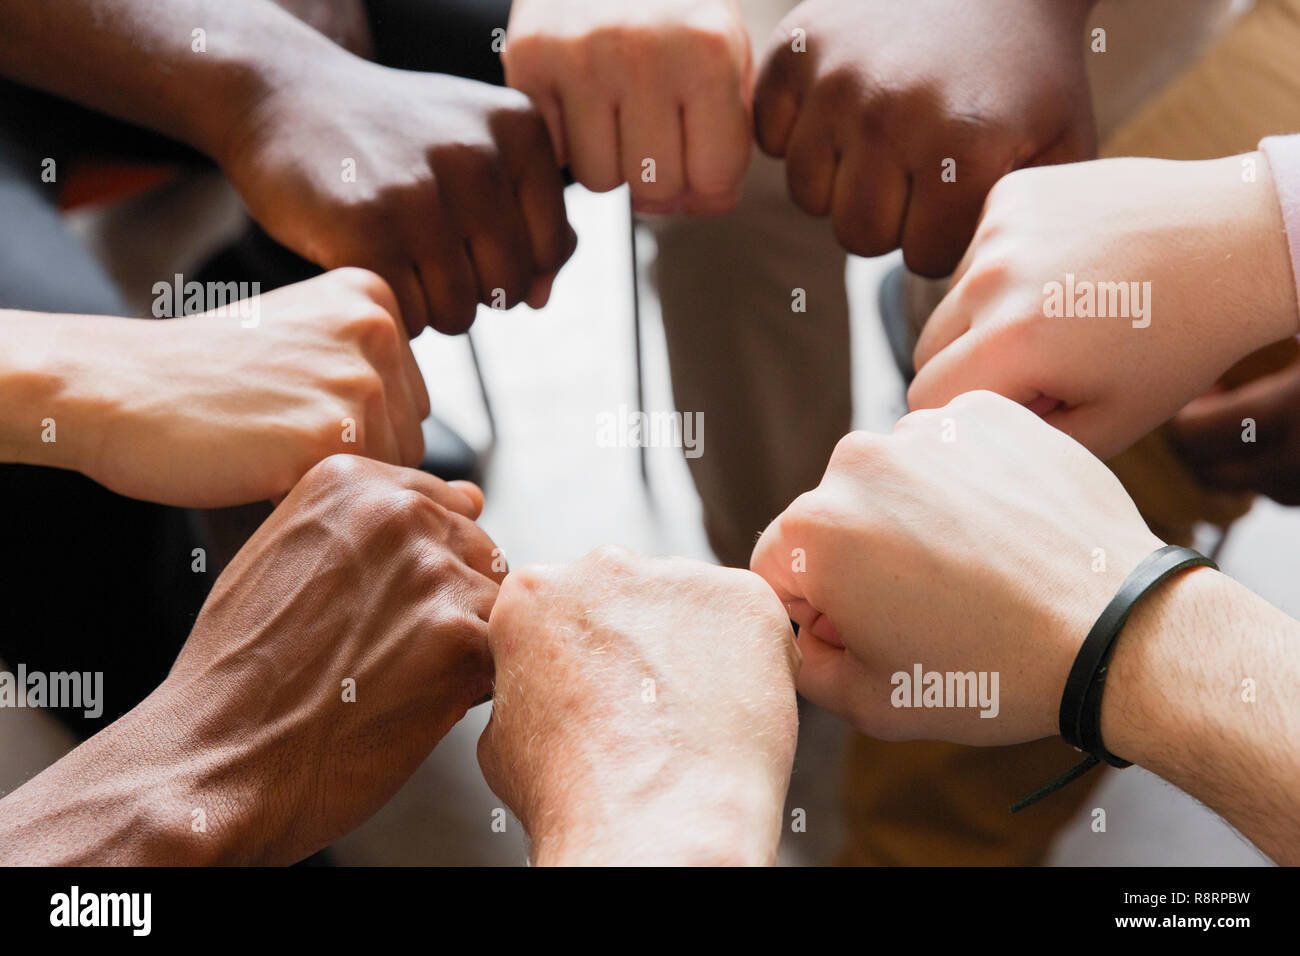 Men joining fists in circle - Stock Image